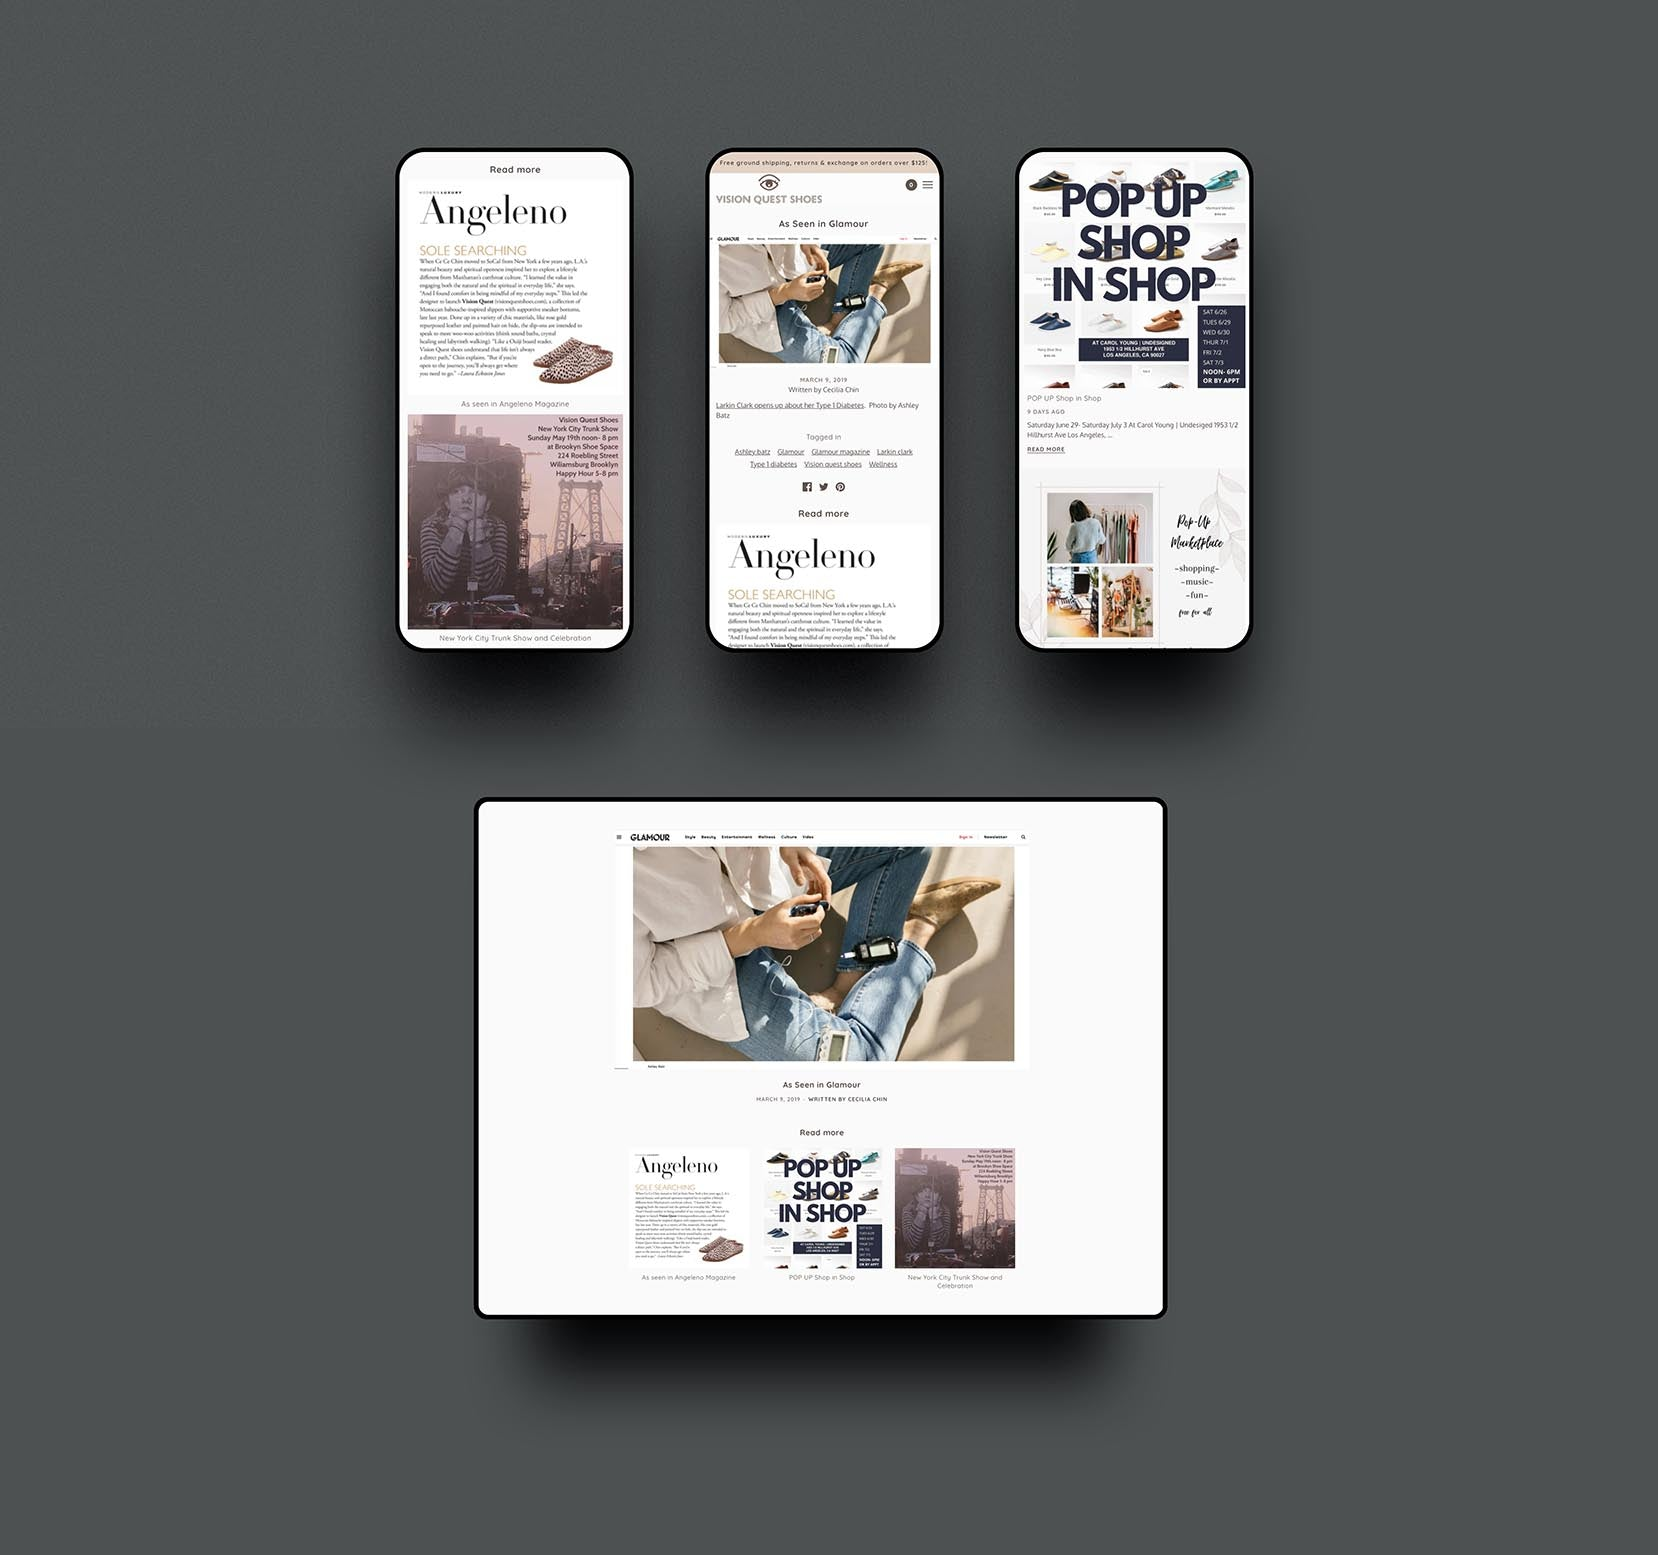 Vision Quest Shoes Shopify E-commerce by Studio Seagraves